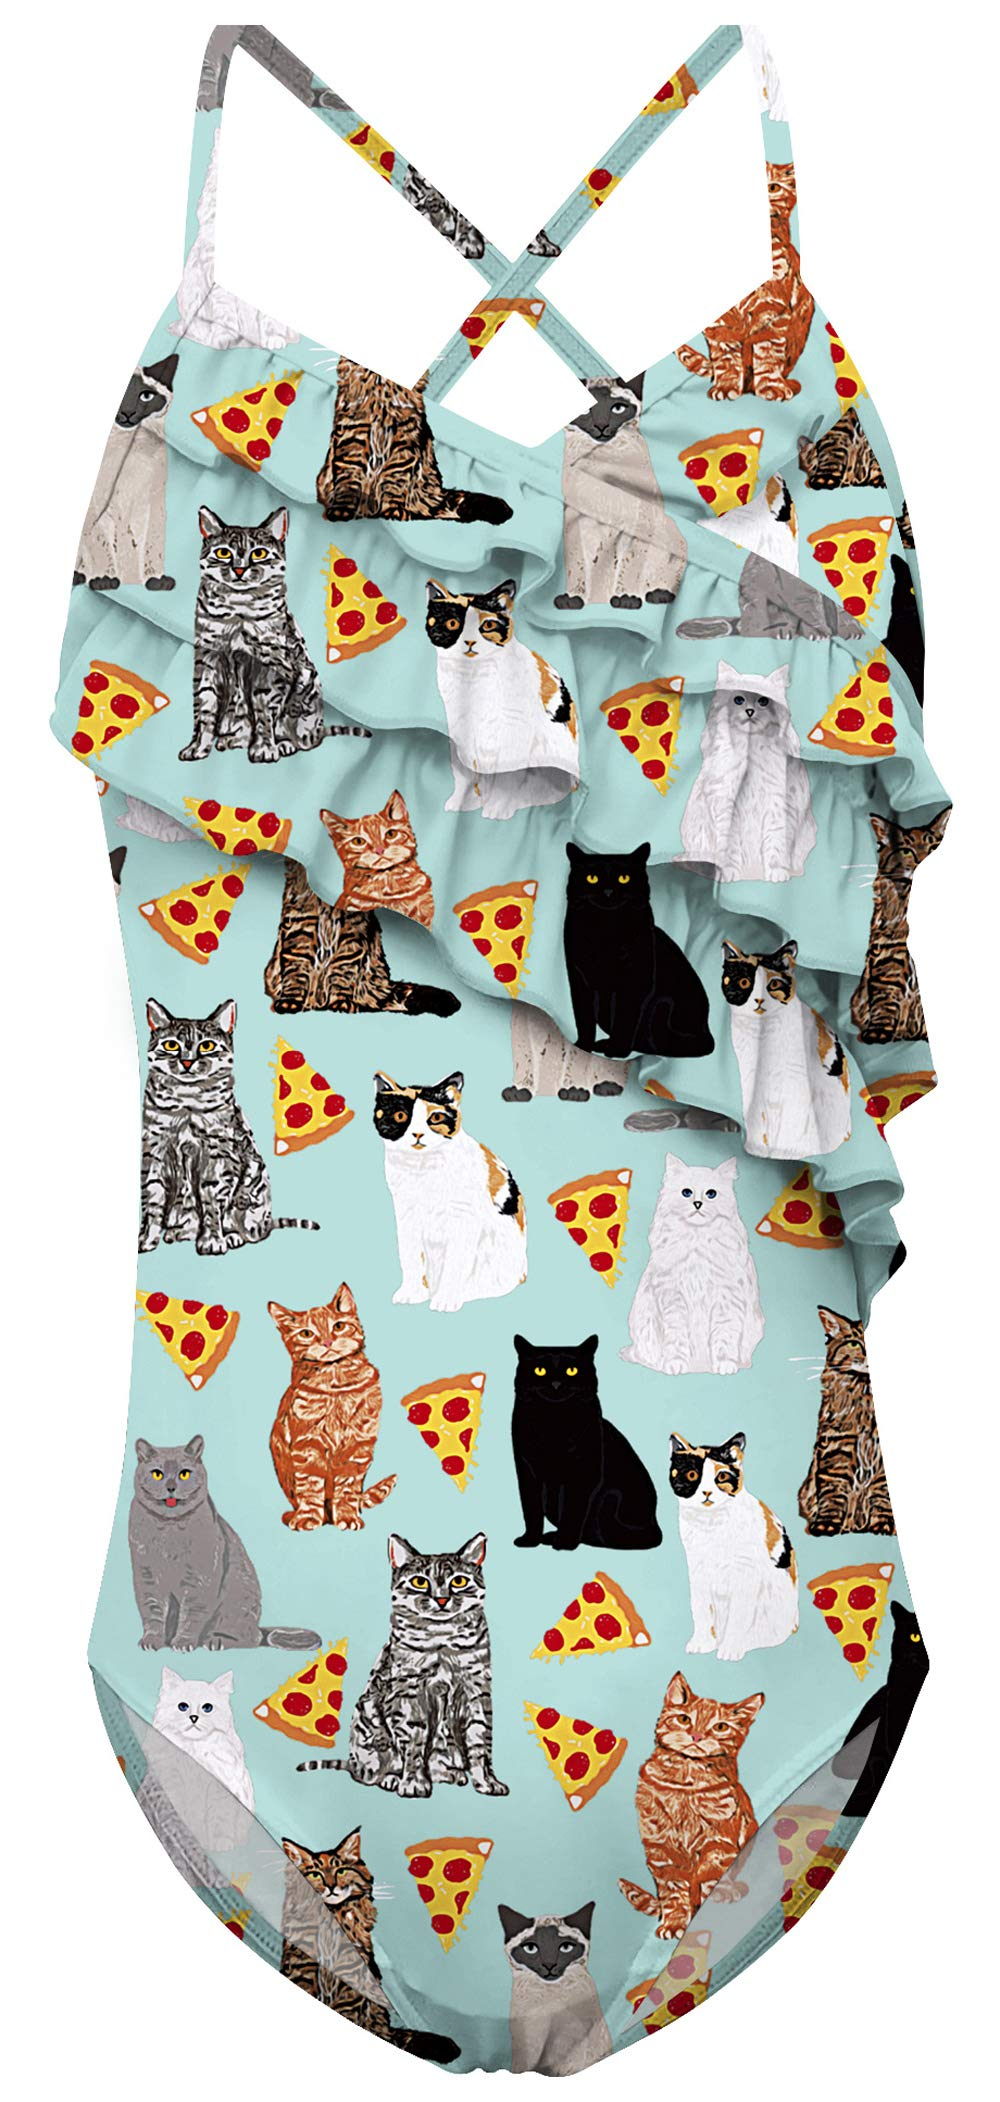 9bc786c8a8 UNICOMIDEA Swimsuit for Girls Pizza Cat One Piece Swimw... $5.10. 70 % off.  More from this seller · NICOMIDEA Boys Swim Shorts Pizza Cat Swim Trunks  Bathing ...